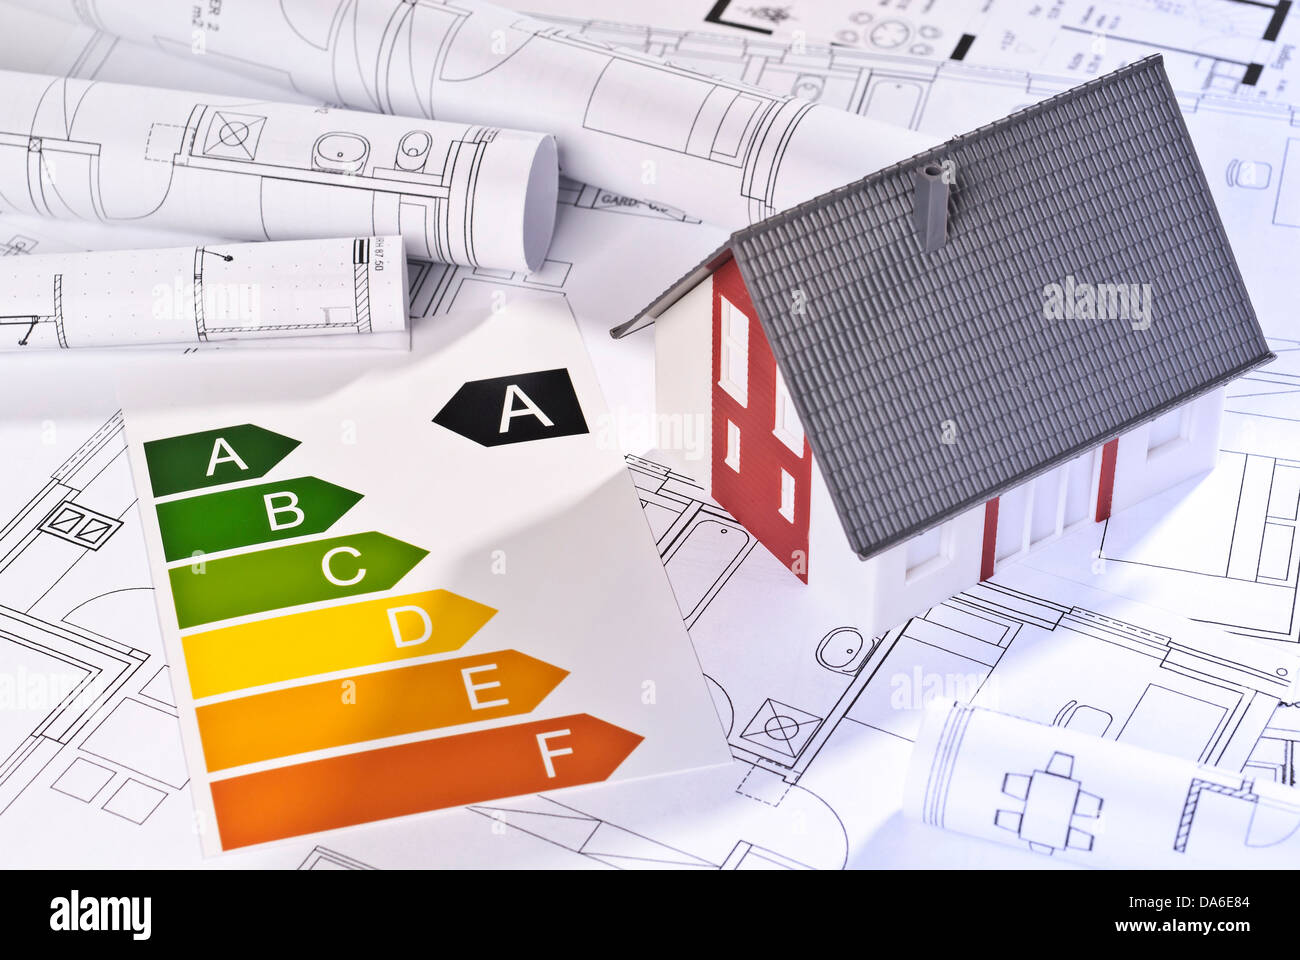 Energy efficiency labels, architectural model and blueprints. - Stock Image